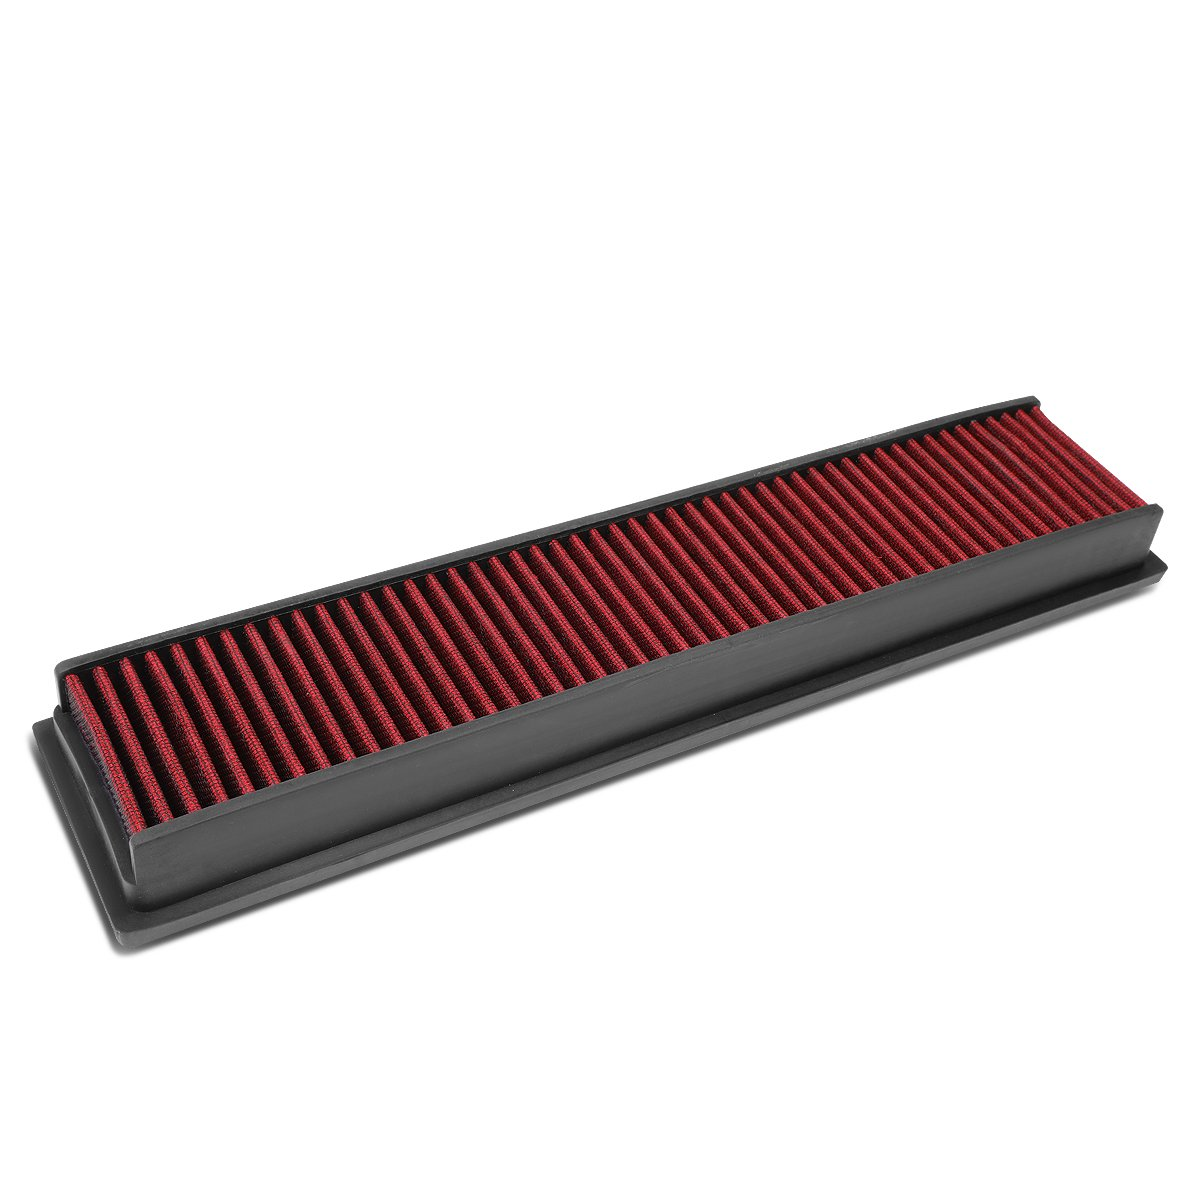 Amazon.com: Blue Washable Engine Drop-In Panel Air Filter for 07-19 Mitsubishi Lancer/Outlander/Grandis/RVR: Automotive